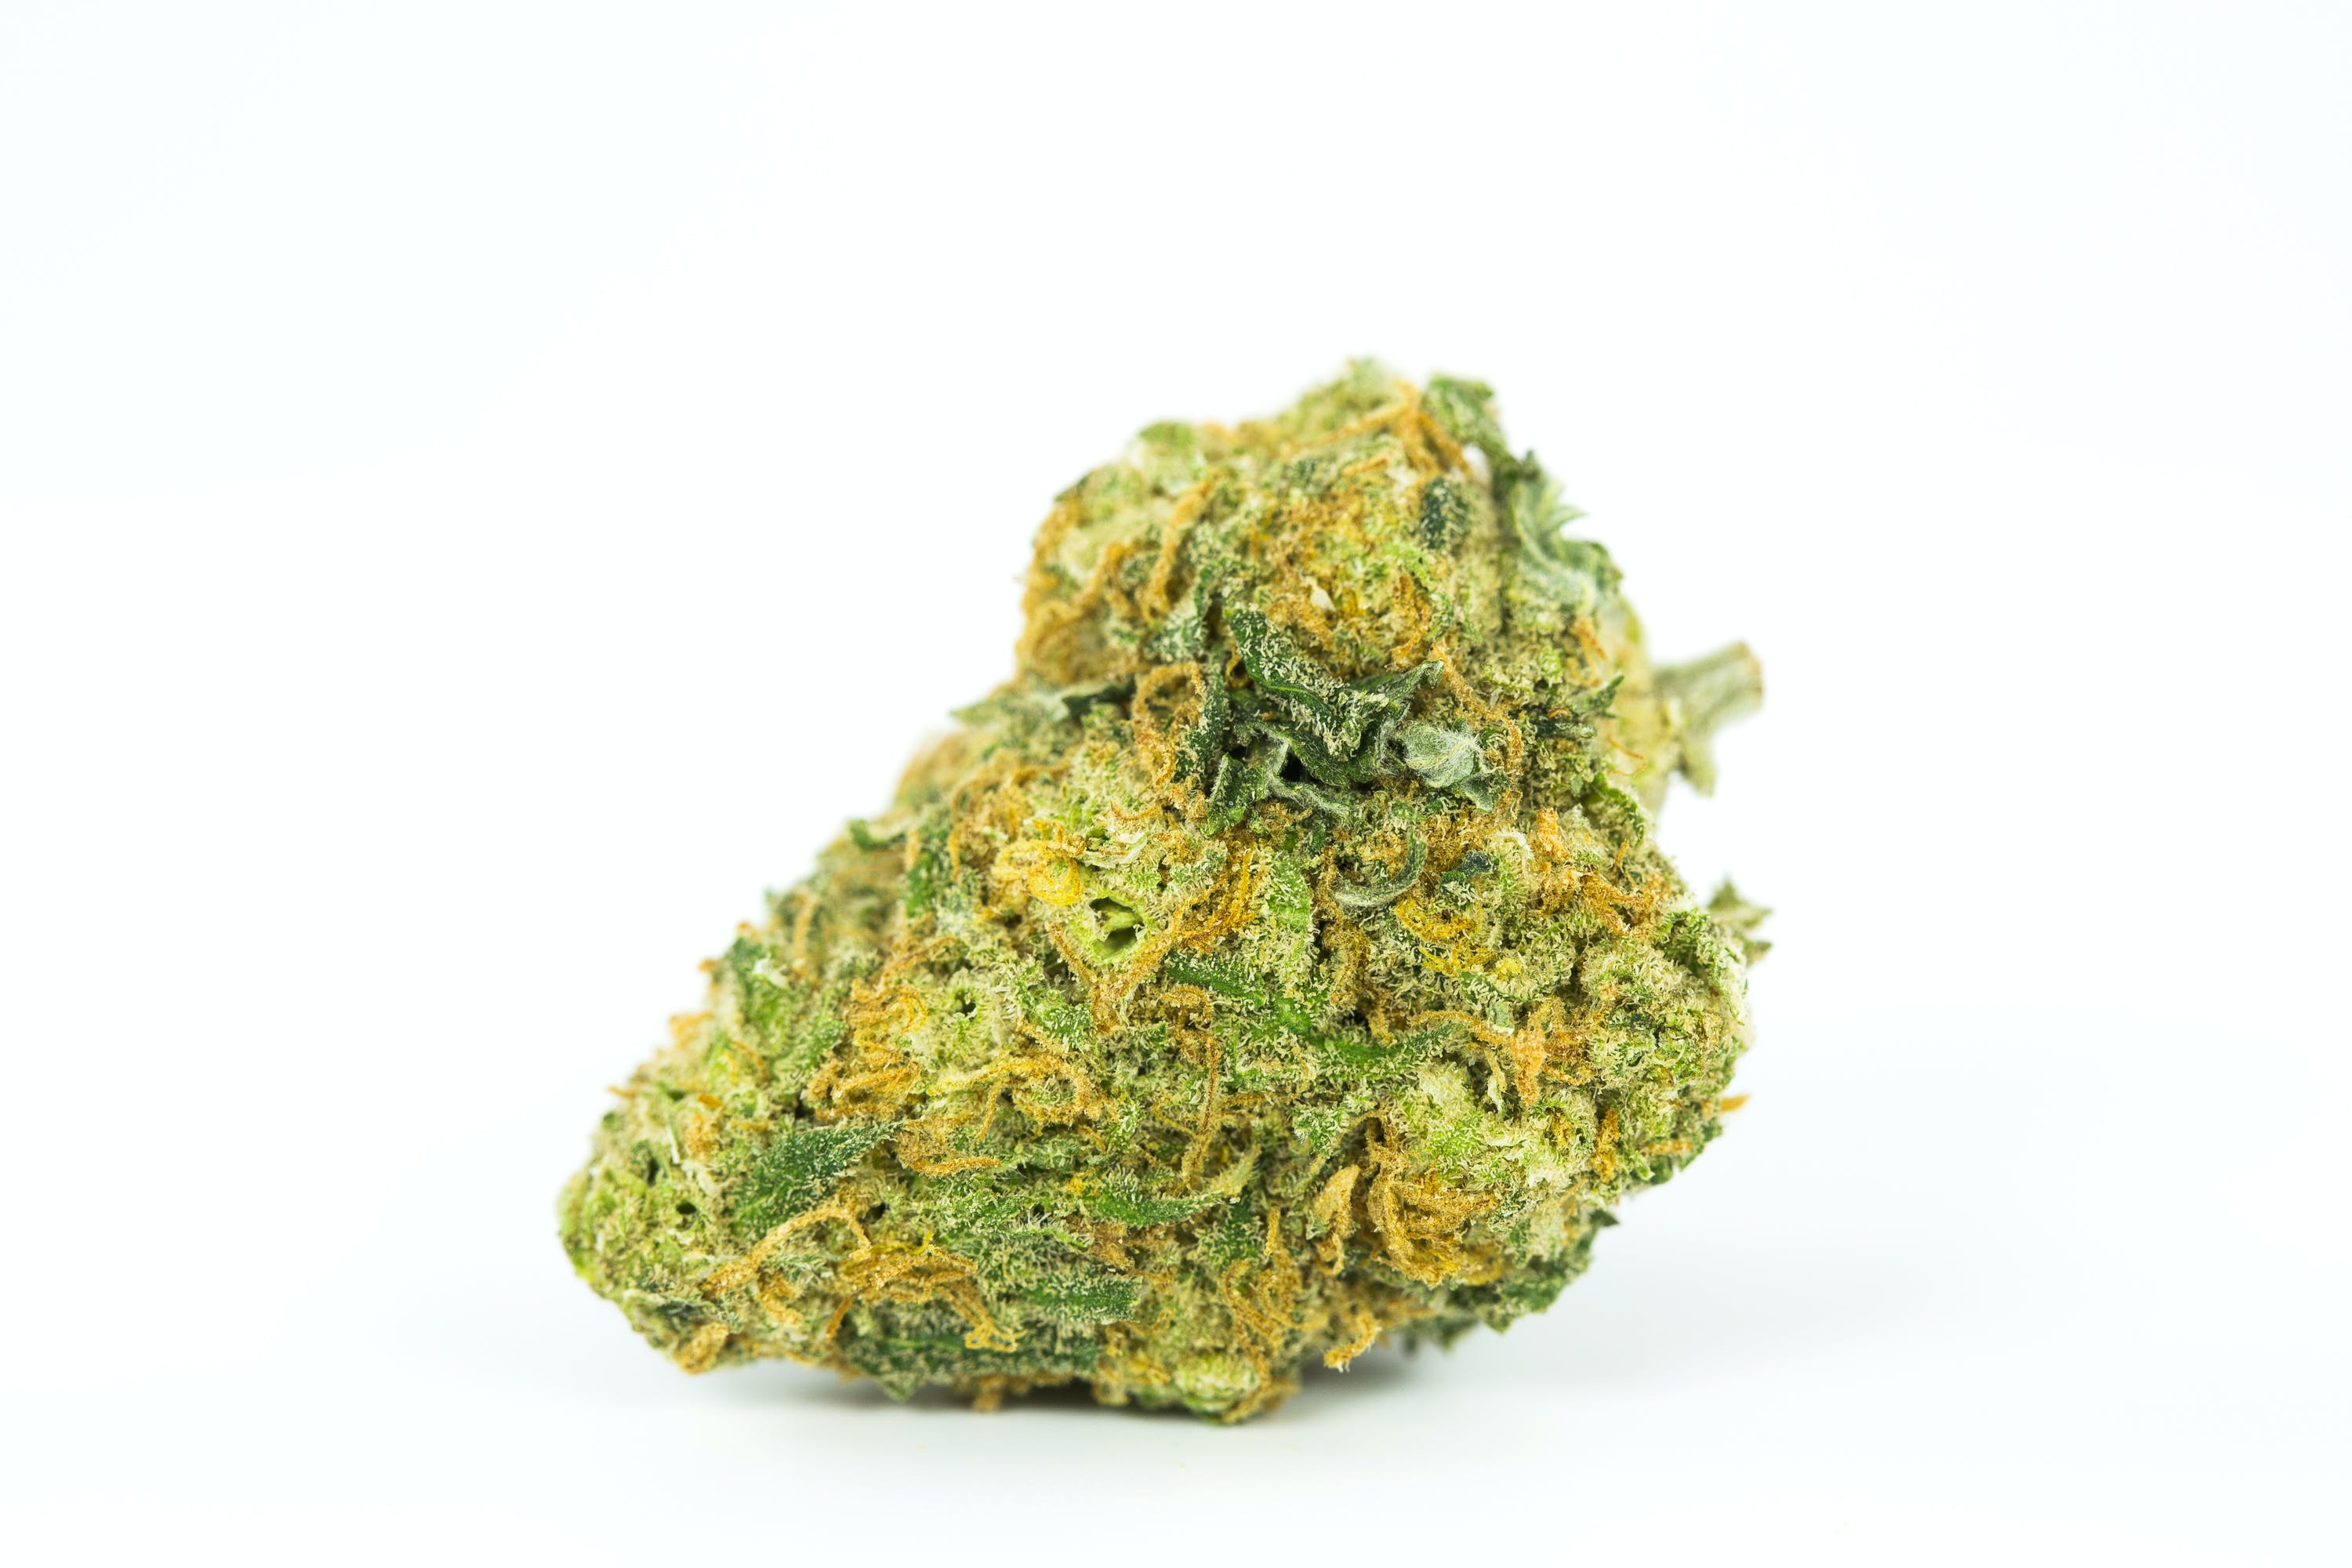 Strawberry Kush Weed; Strawberry Kush Cannabis Strain; Strawberry Kush Hybrid Marijuana Strain